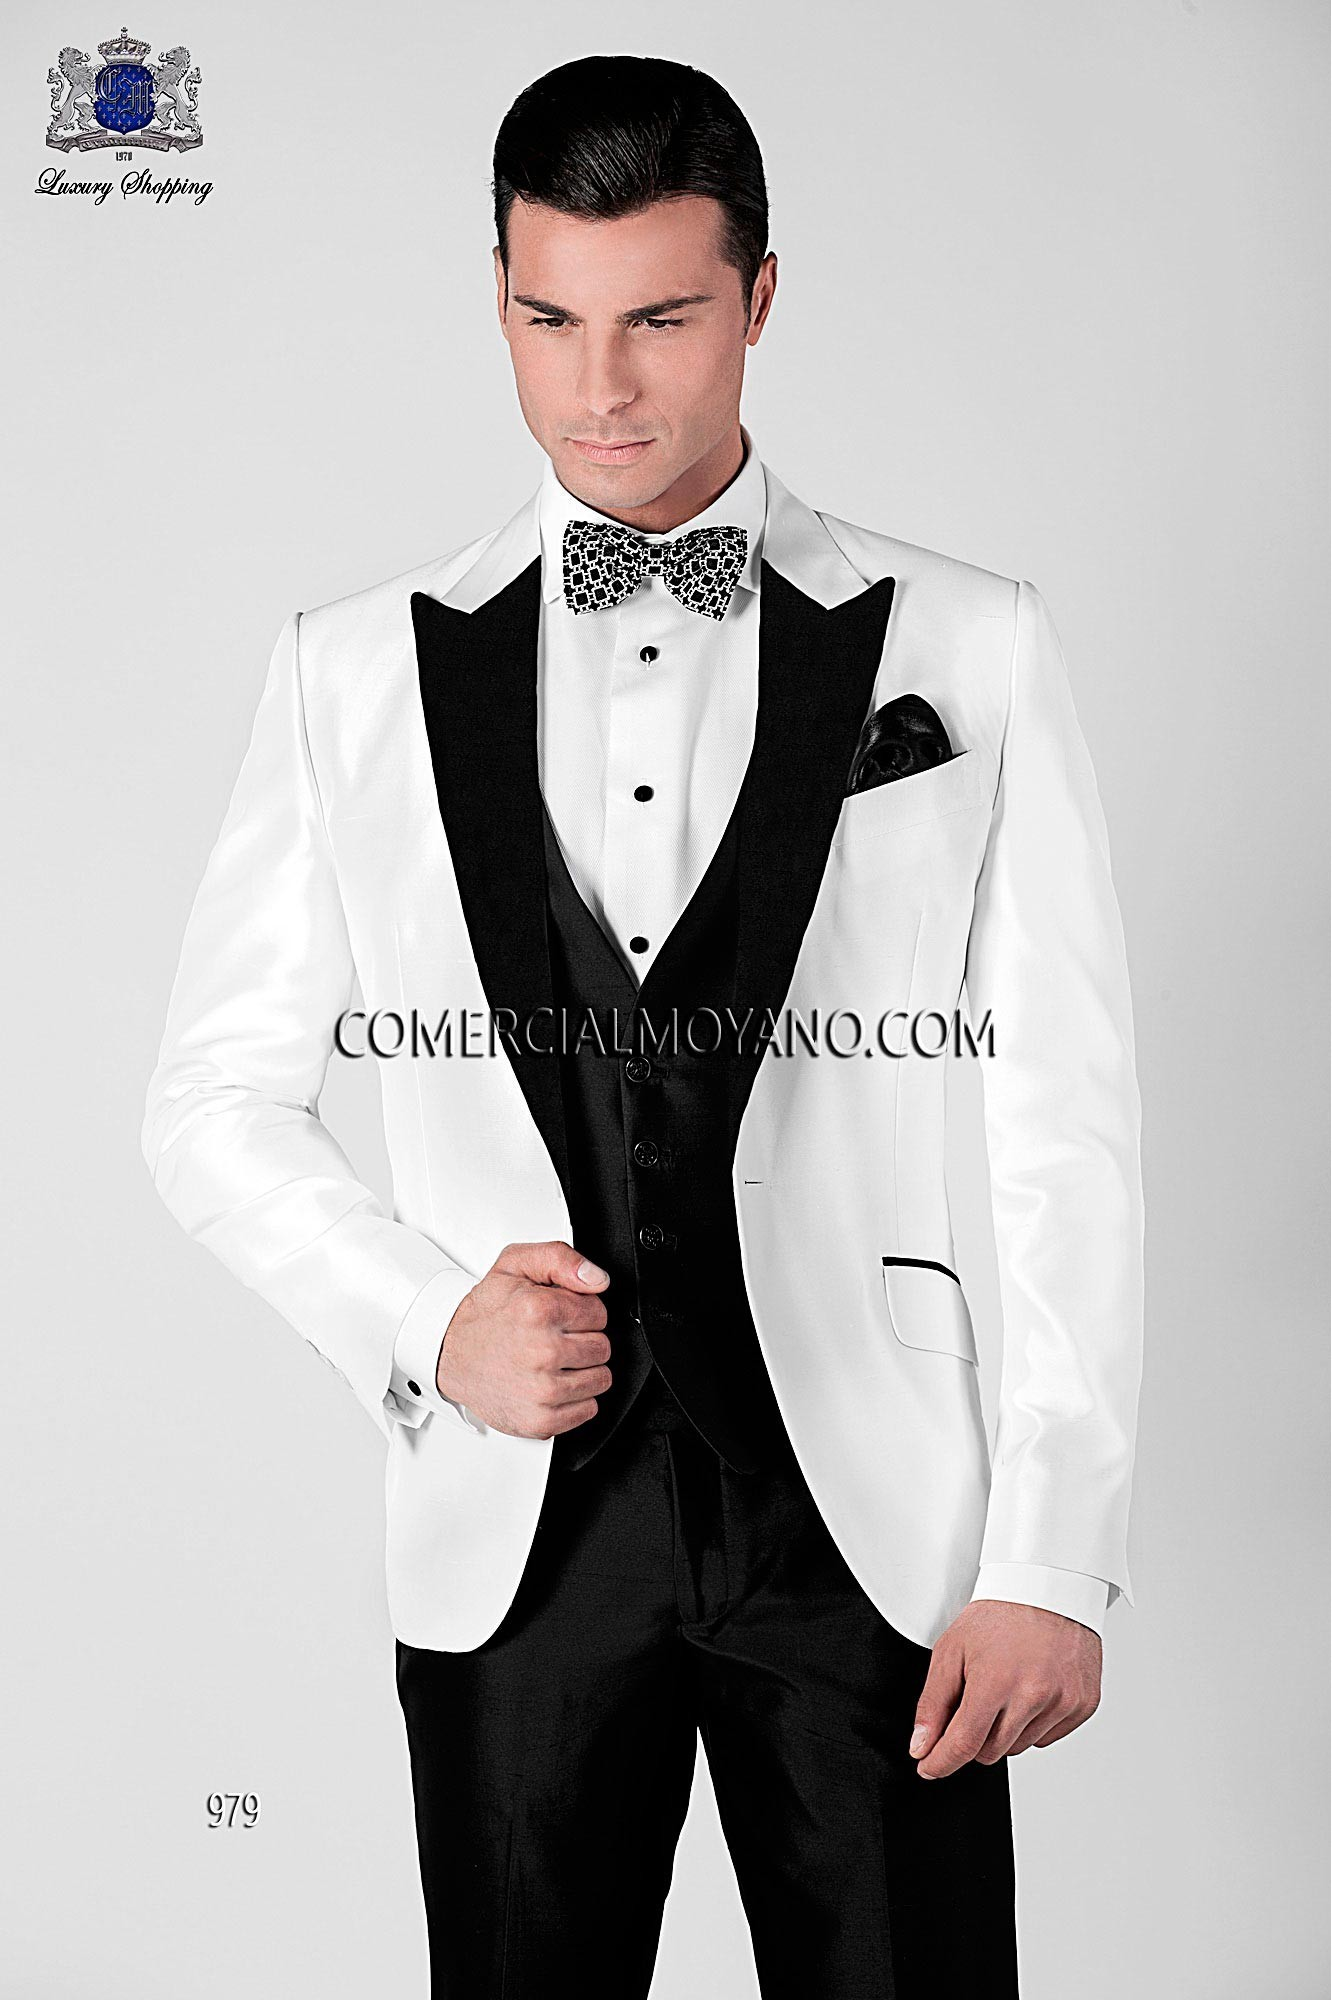 Black Tie White men wedding suit, model: 979 Ottavio Nuccio Gala ...